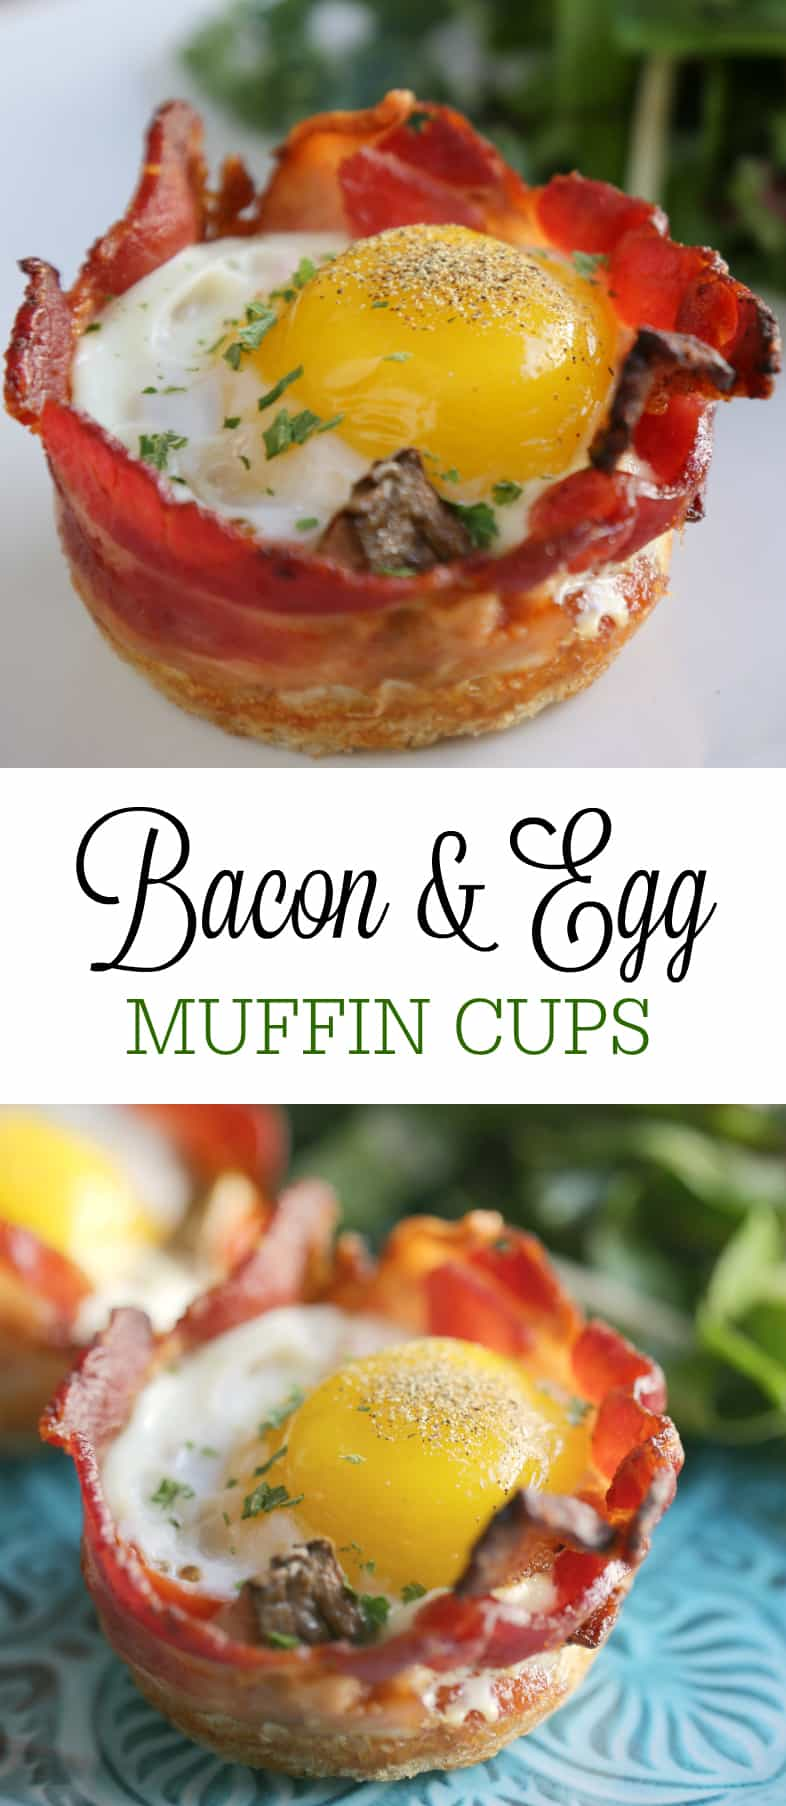 bacon and egg muffin cups recipe